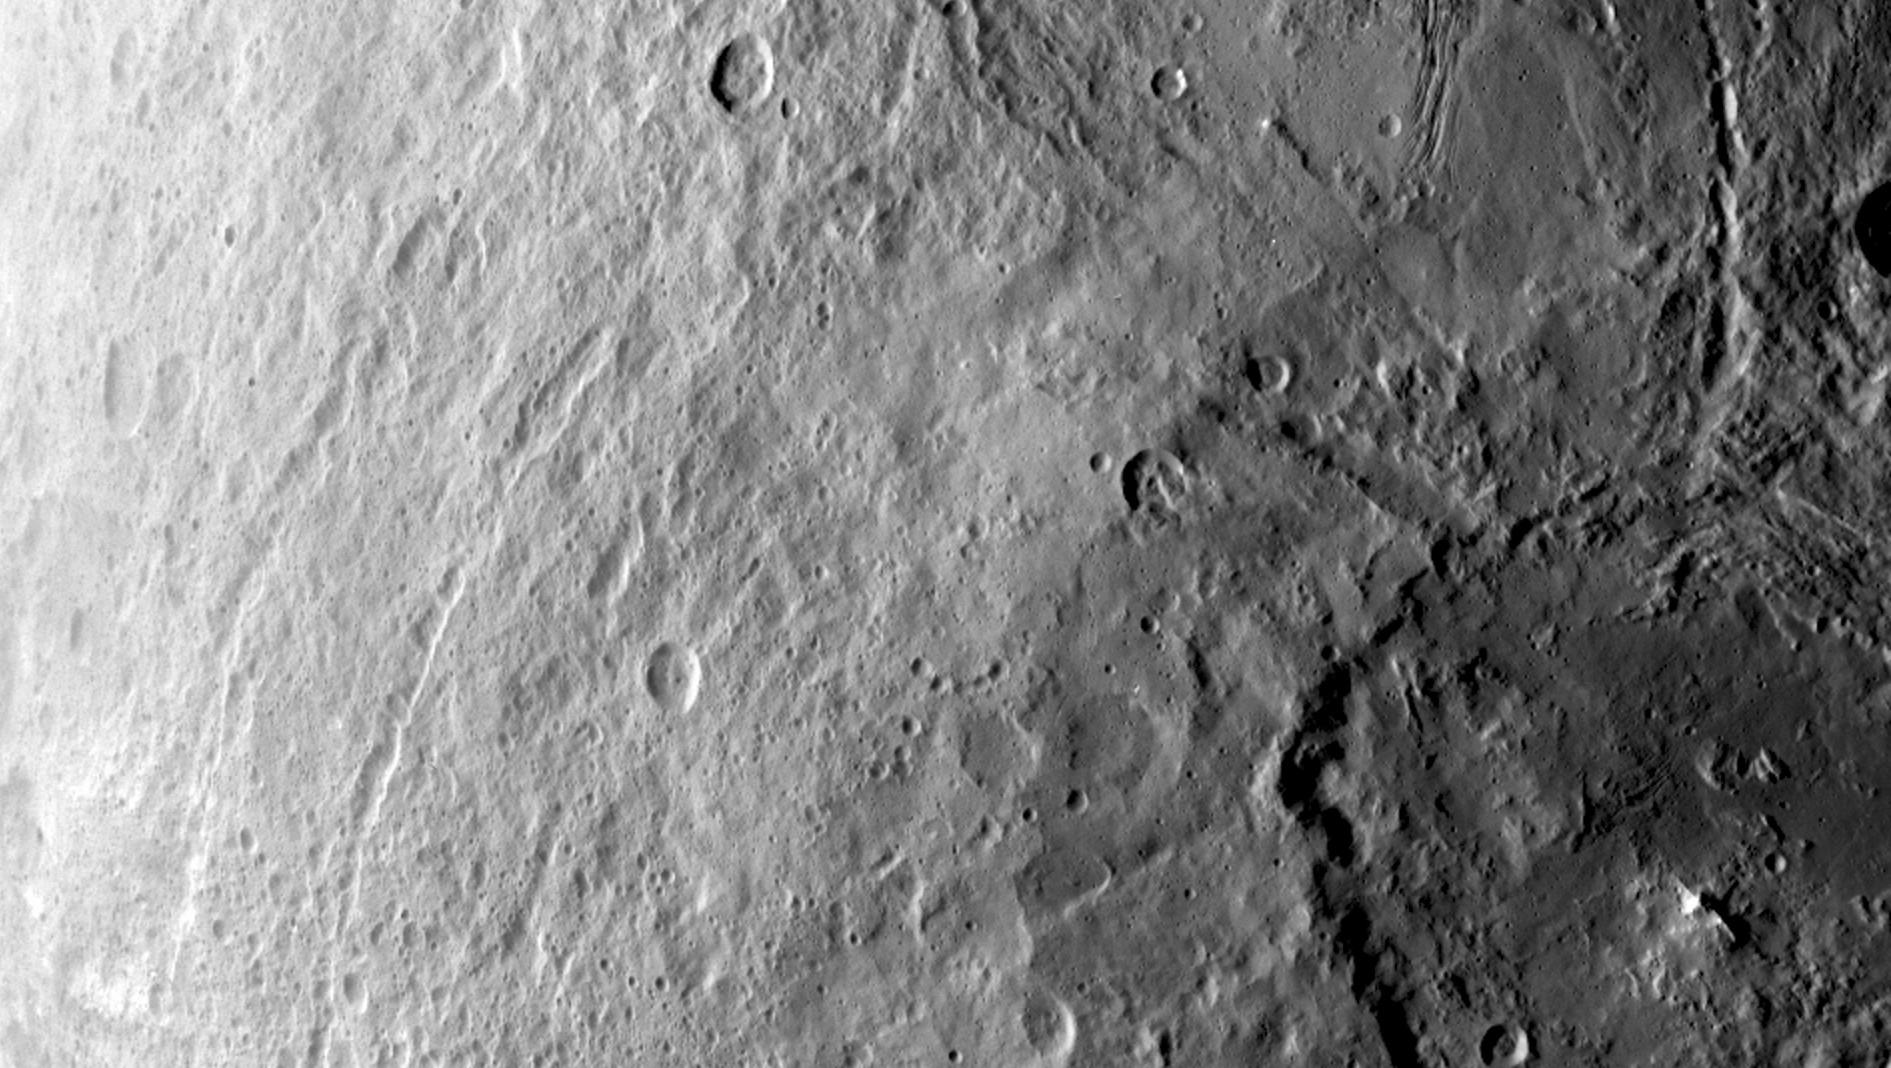 Dawn Sees Giant Crater on Ceres